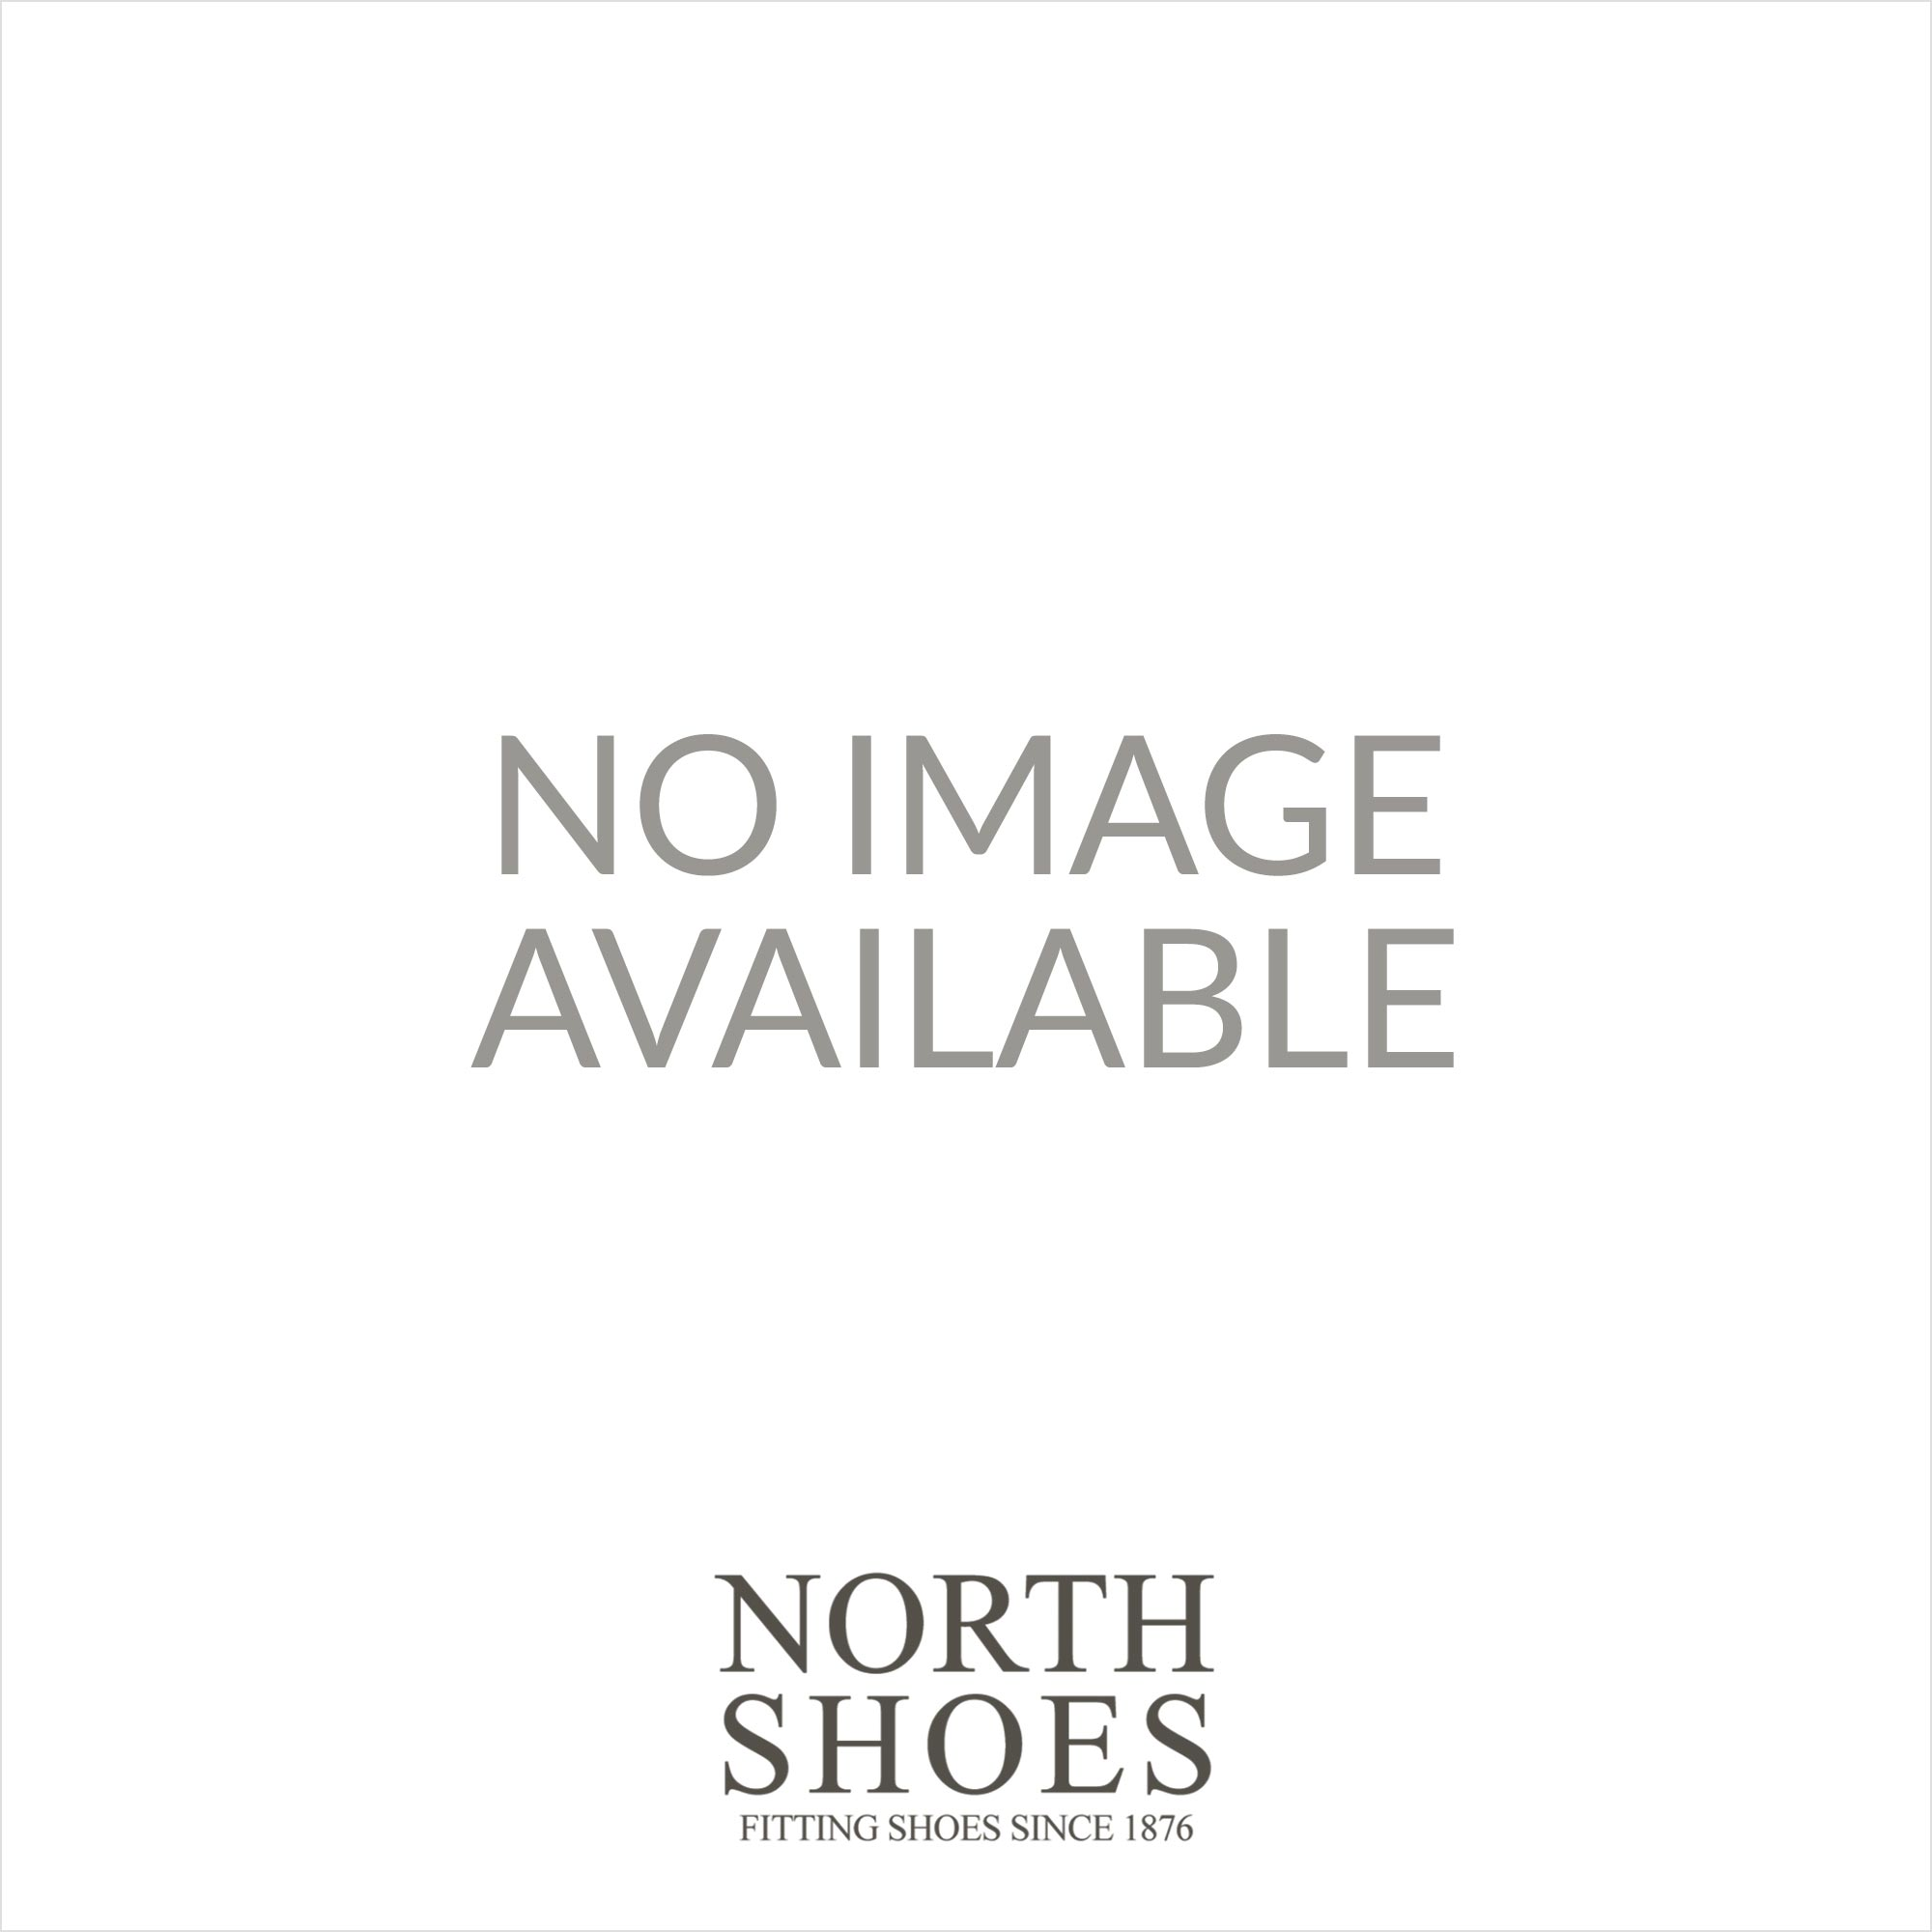 d10b91a7f6 Clarks Aisley Tulip Orange Nubuck Leather Womens Wedge Slingback Sandal -  Clarks from North Shoes UK